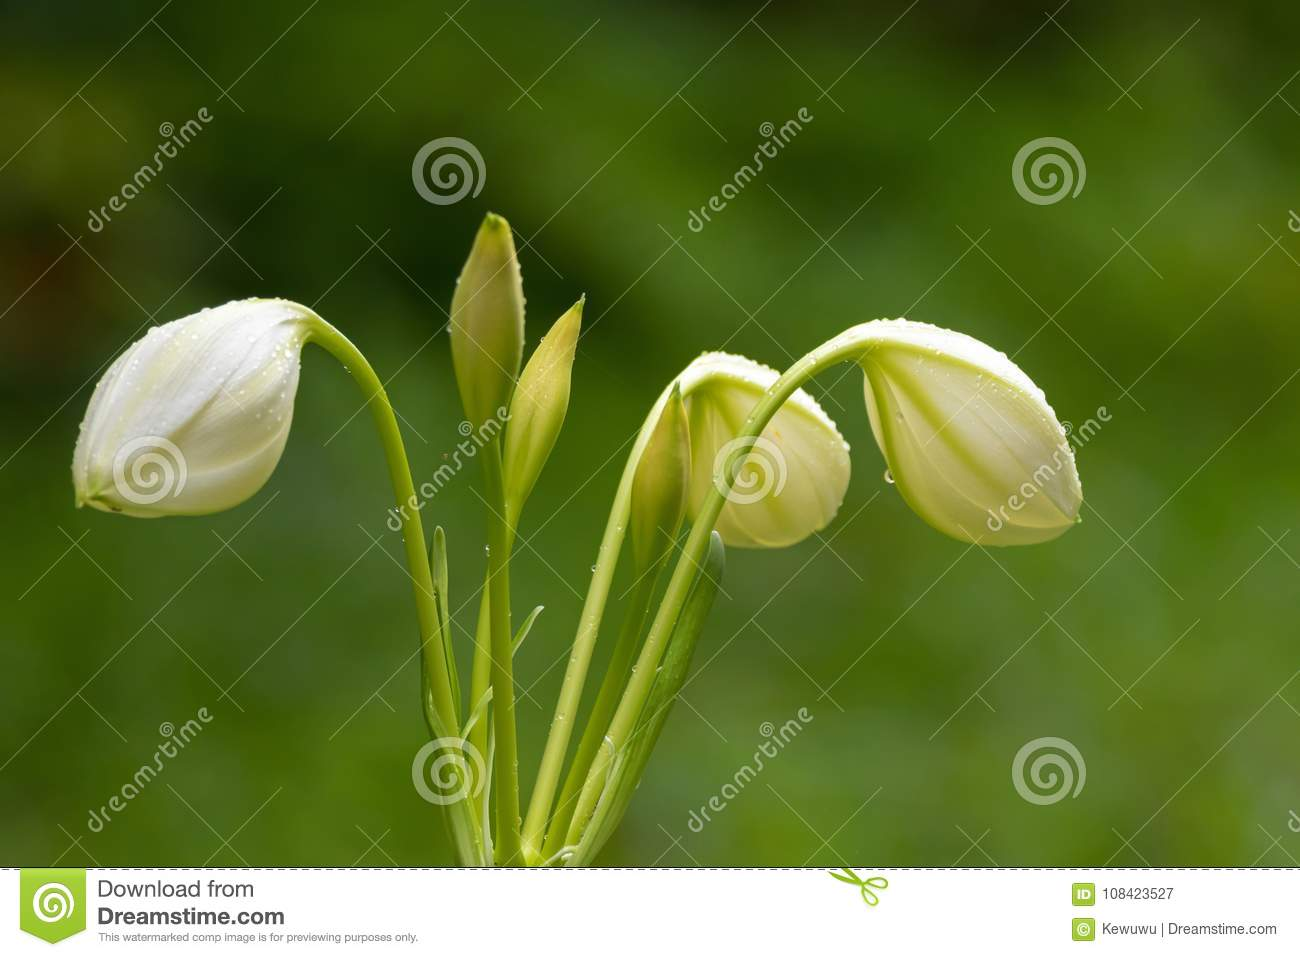 Closeup Wet Amazon Lily White Flower Bud Growing In Garden With